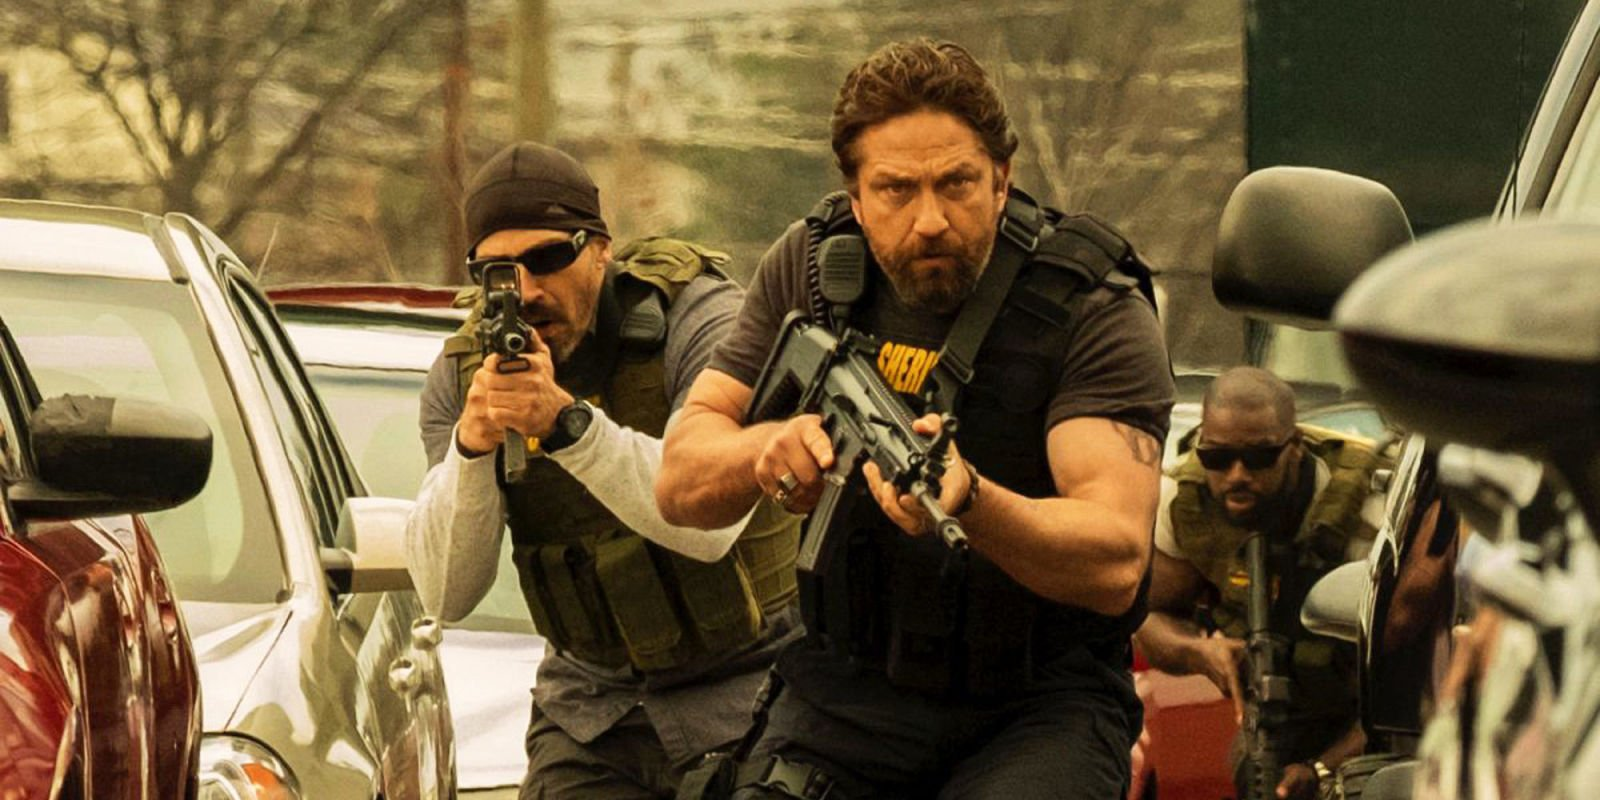 Gerard Butler will return for Den of Thieves 2 alongside O'Shea Jackson Jr and Curtis '50 Cent' Jackson